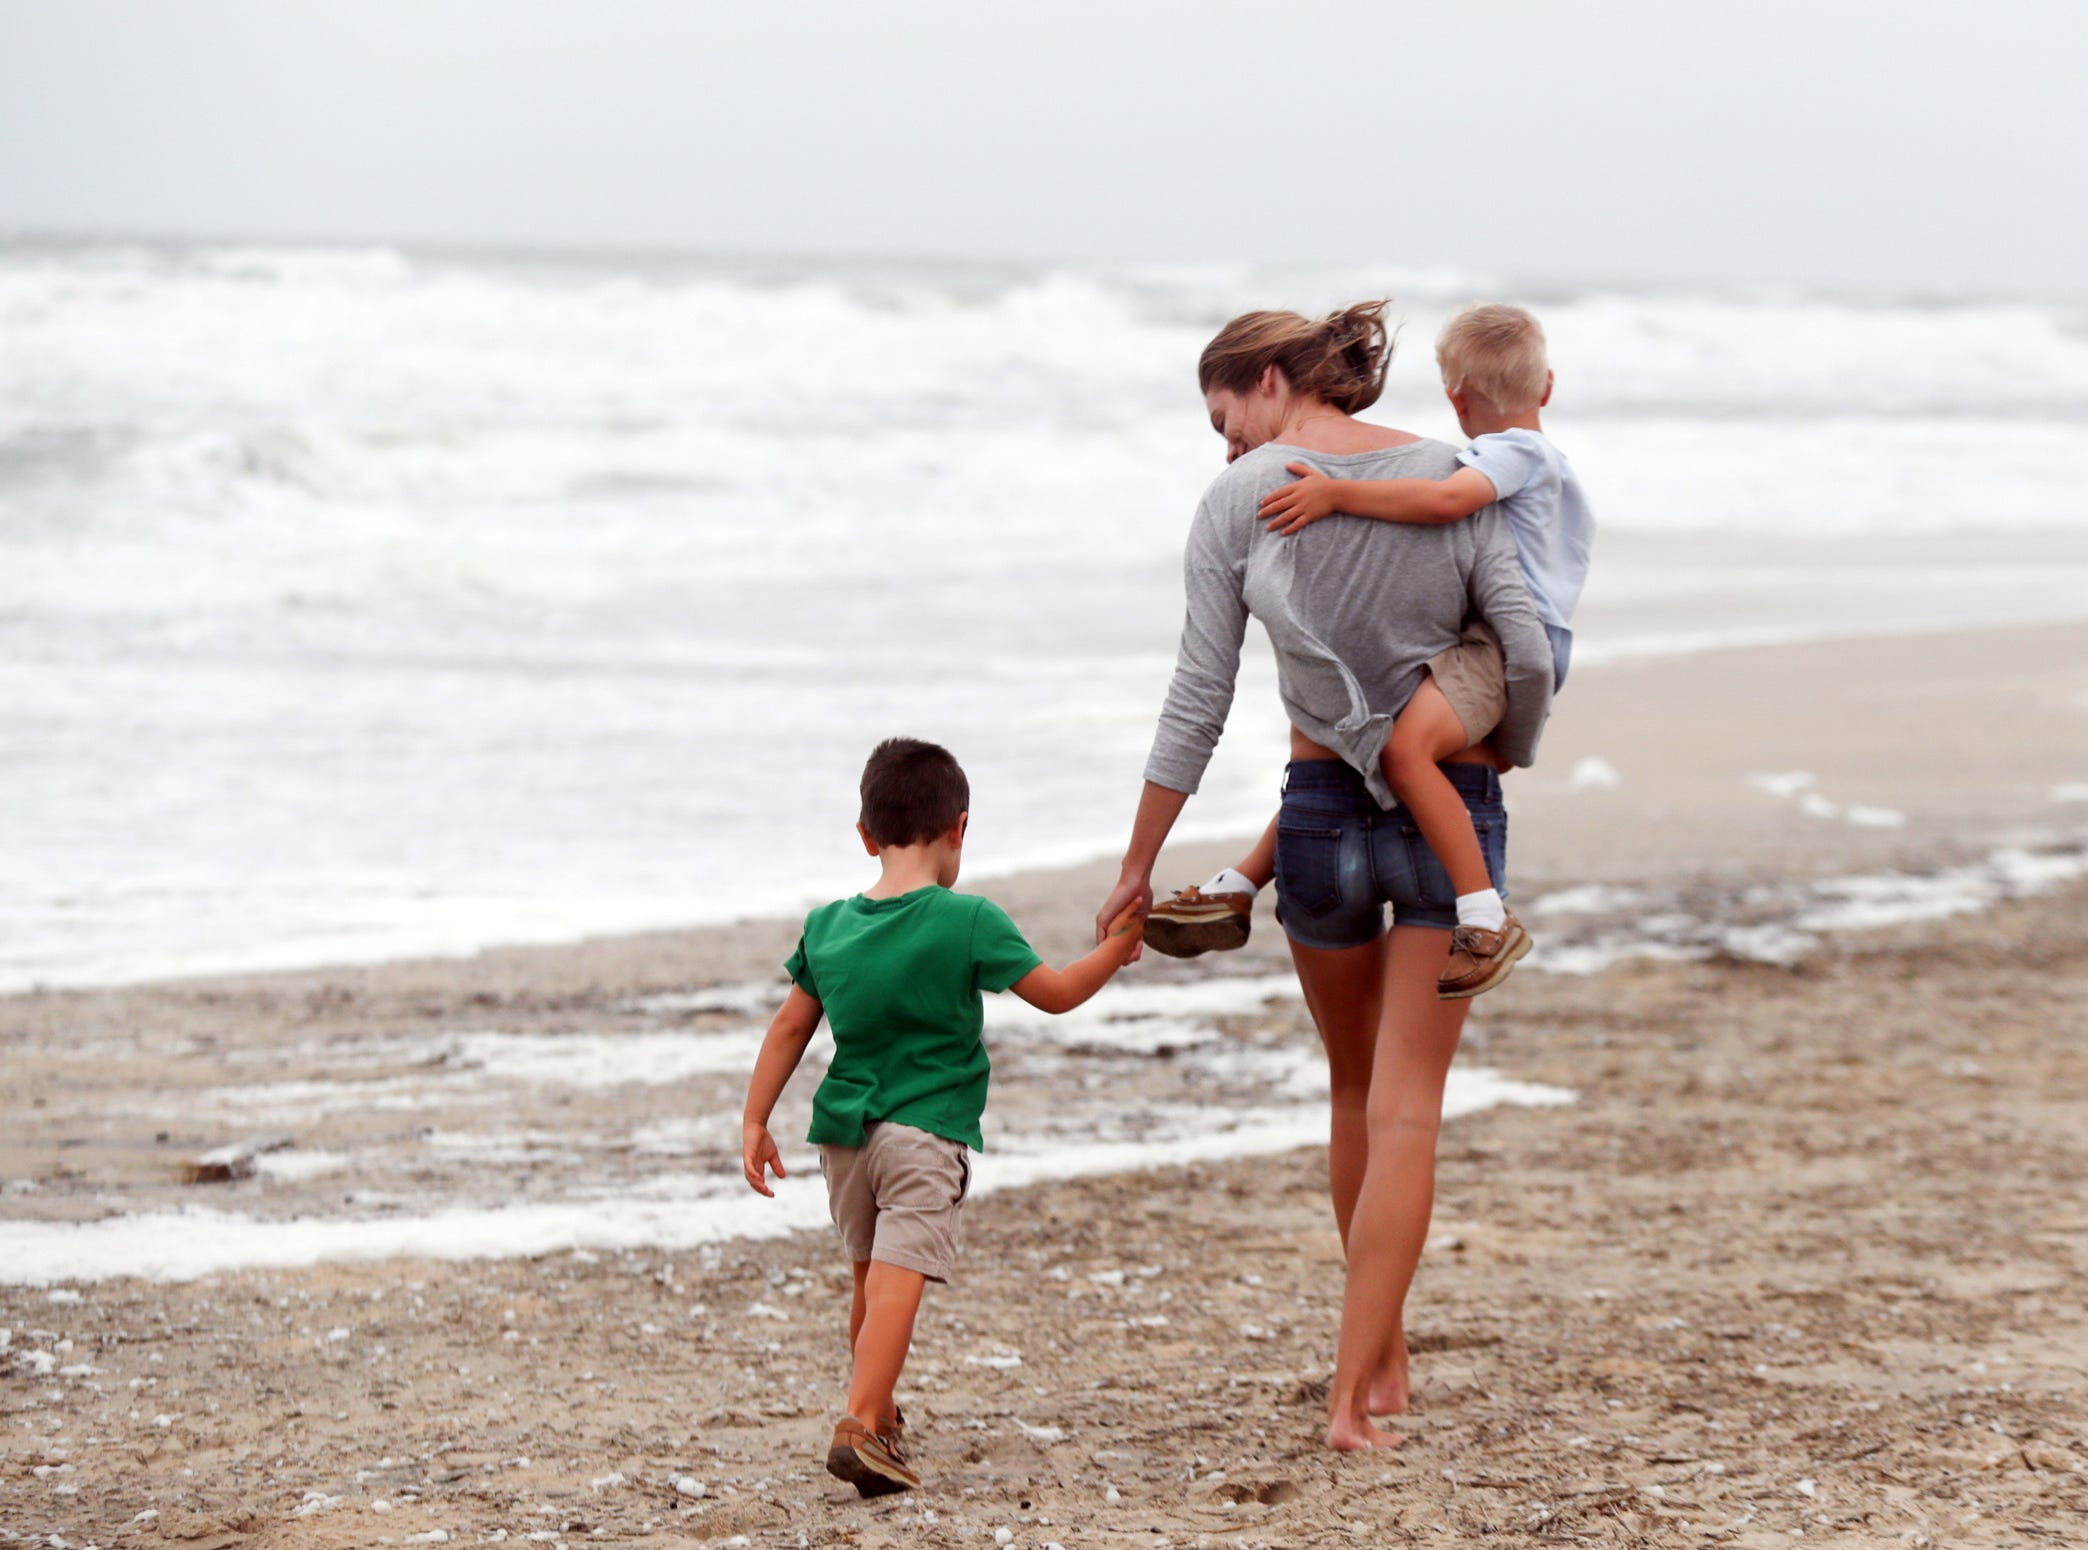 September 14, 2018; Nags Head, NC, USA; Creecy Richardson walks on the beach with her son's Winston and William in Nags Head, North Carolina on Friday, September 14, 2018.